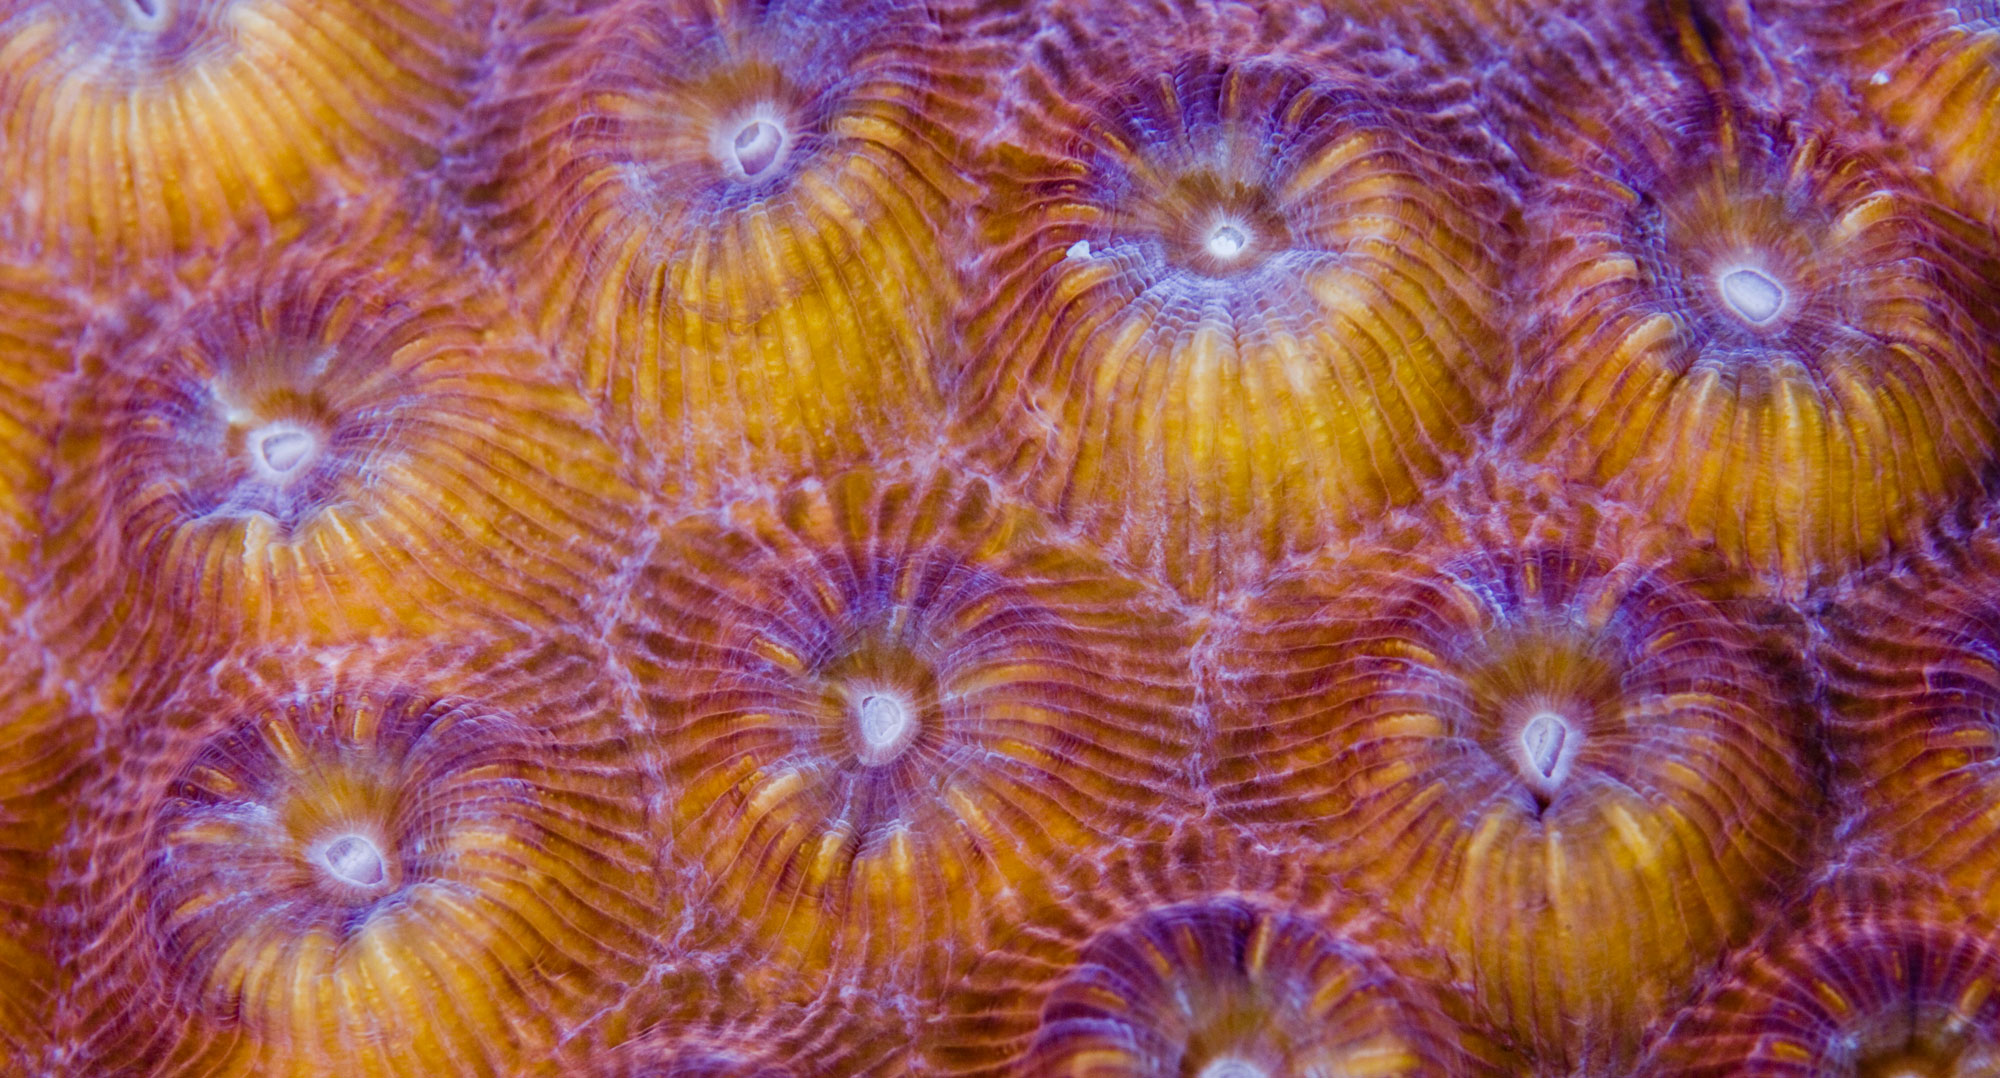 Close-up of the Great star coral, Montastrea cavernosa. Copyright B.Christensen/Azote